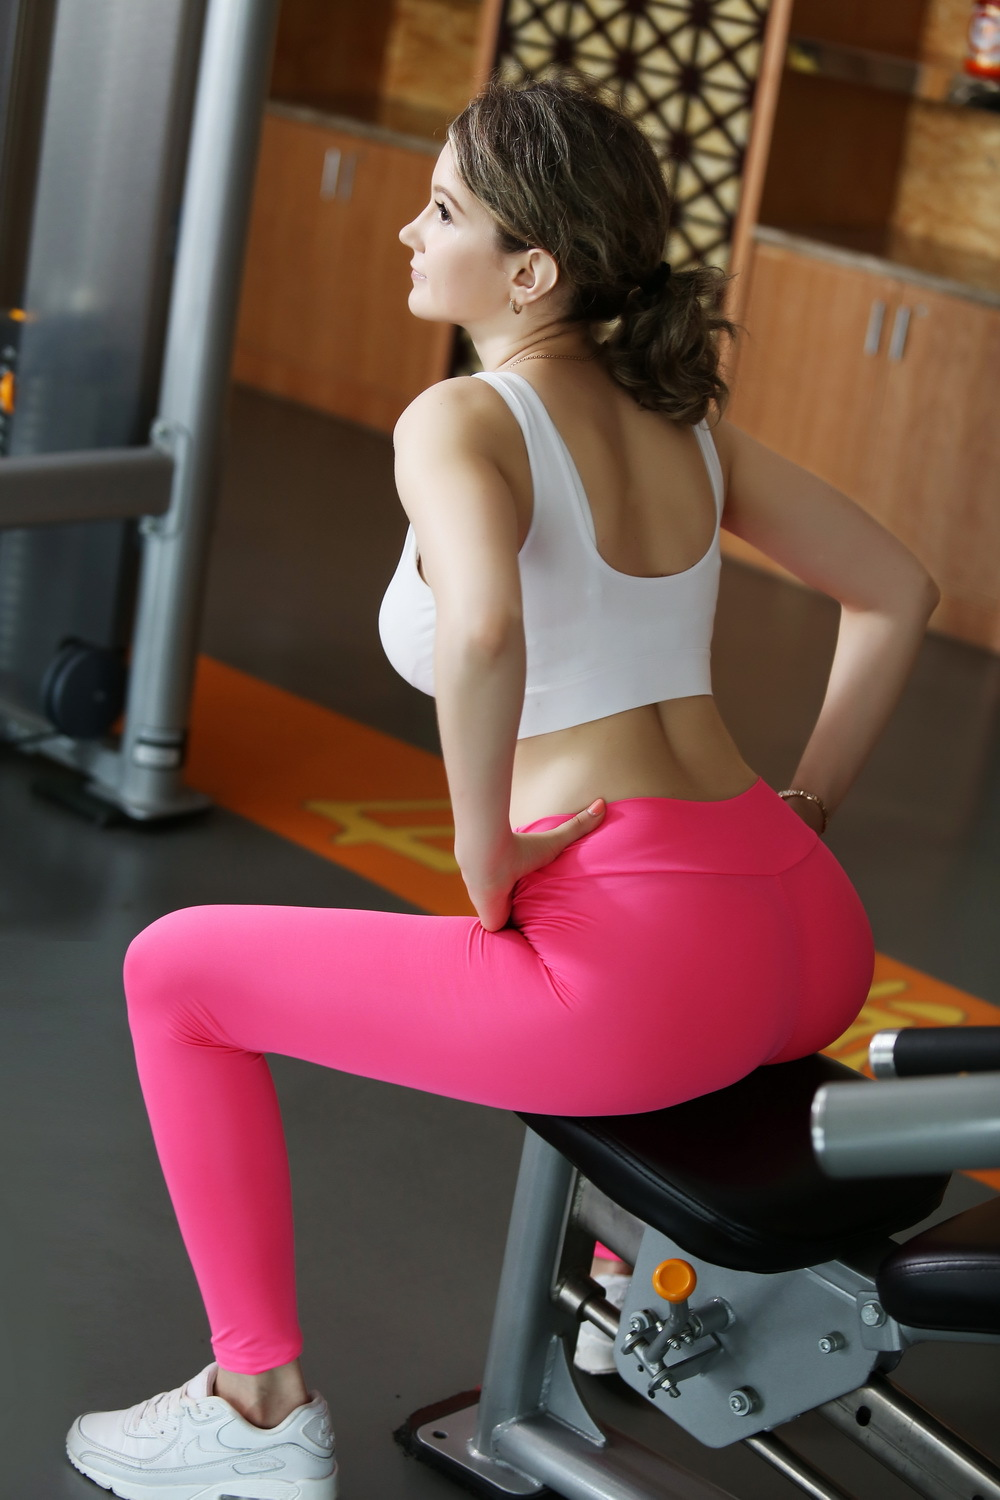 Free Clips Of Ladies Wearing Tight Clothes 63